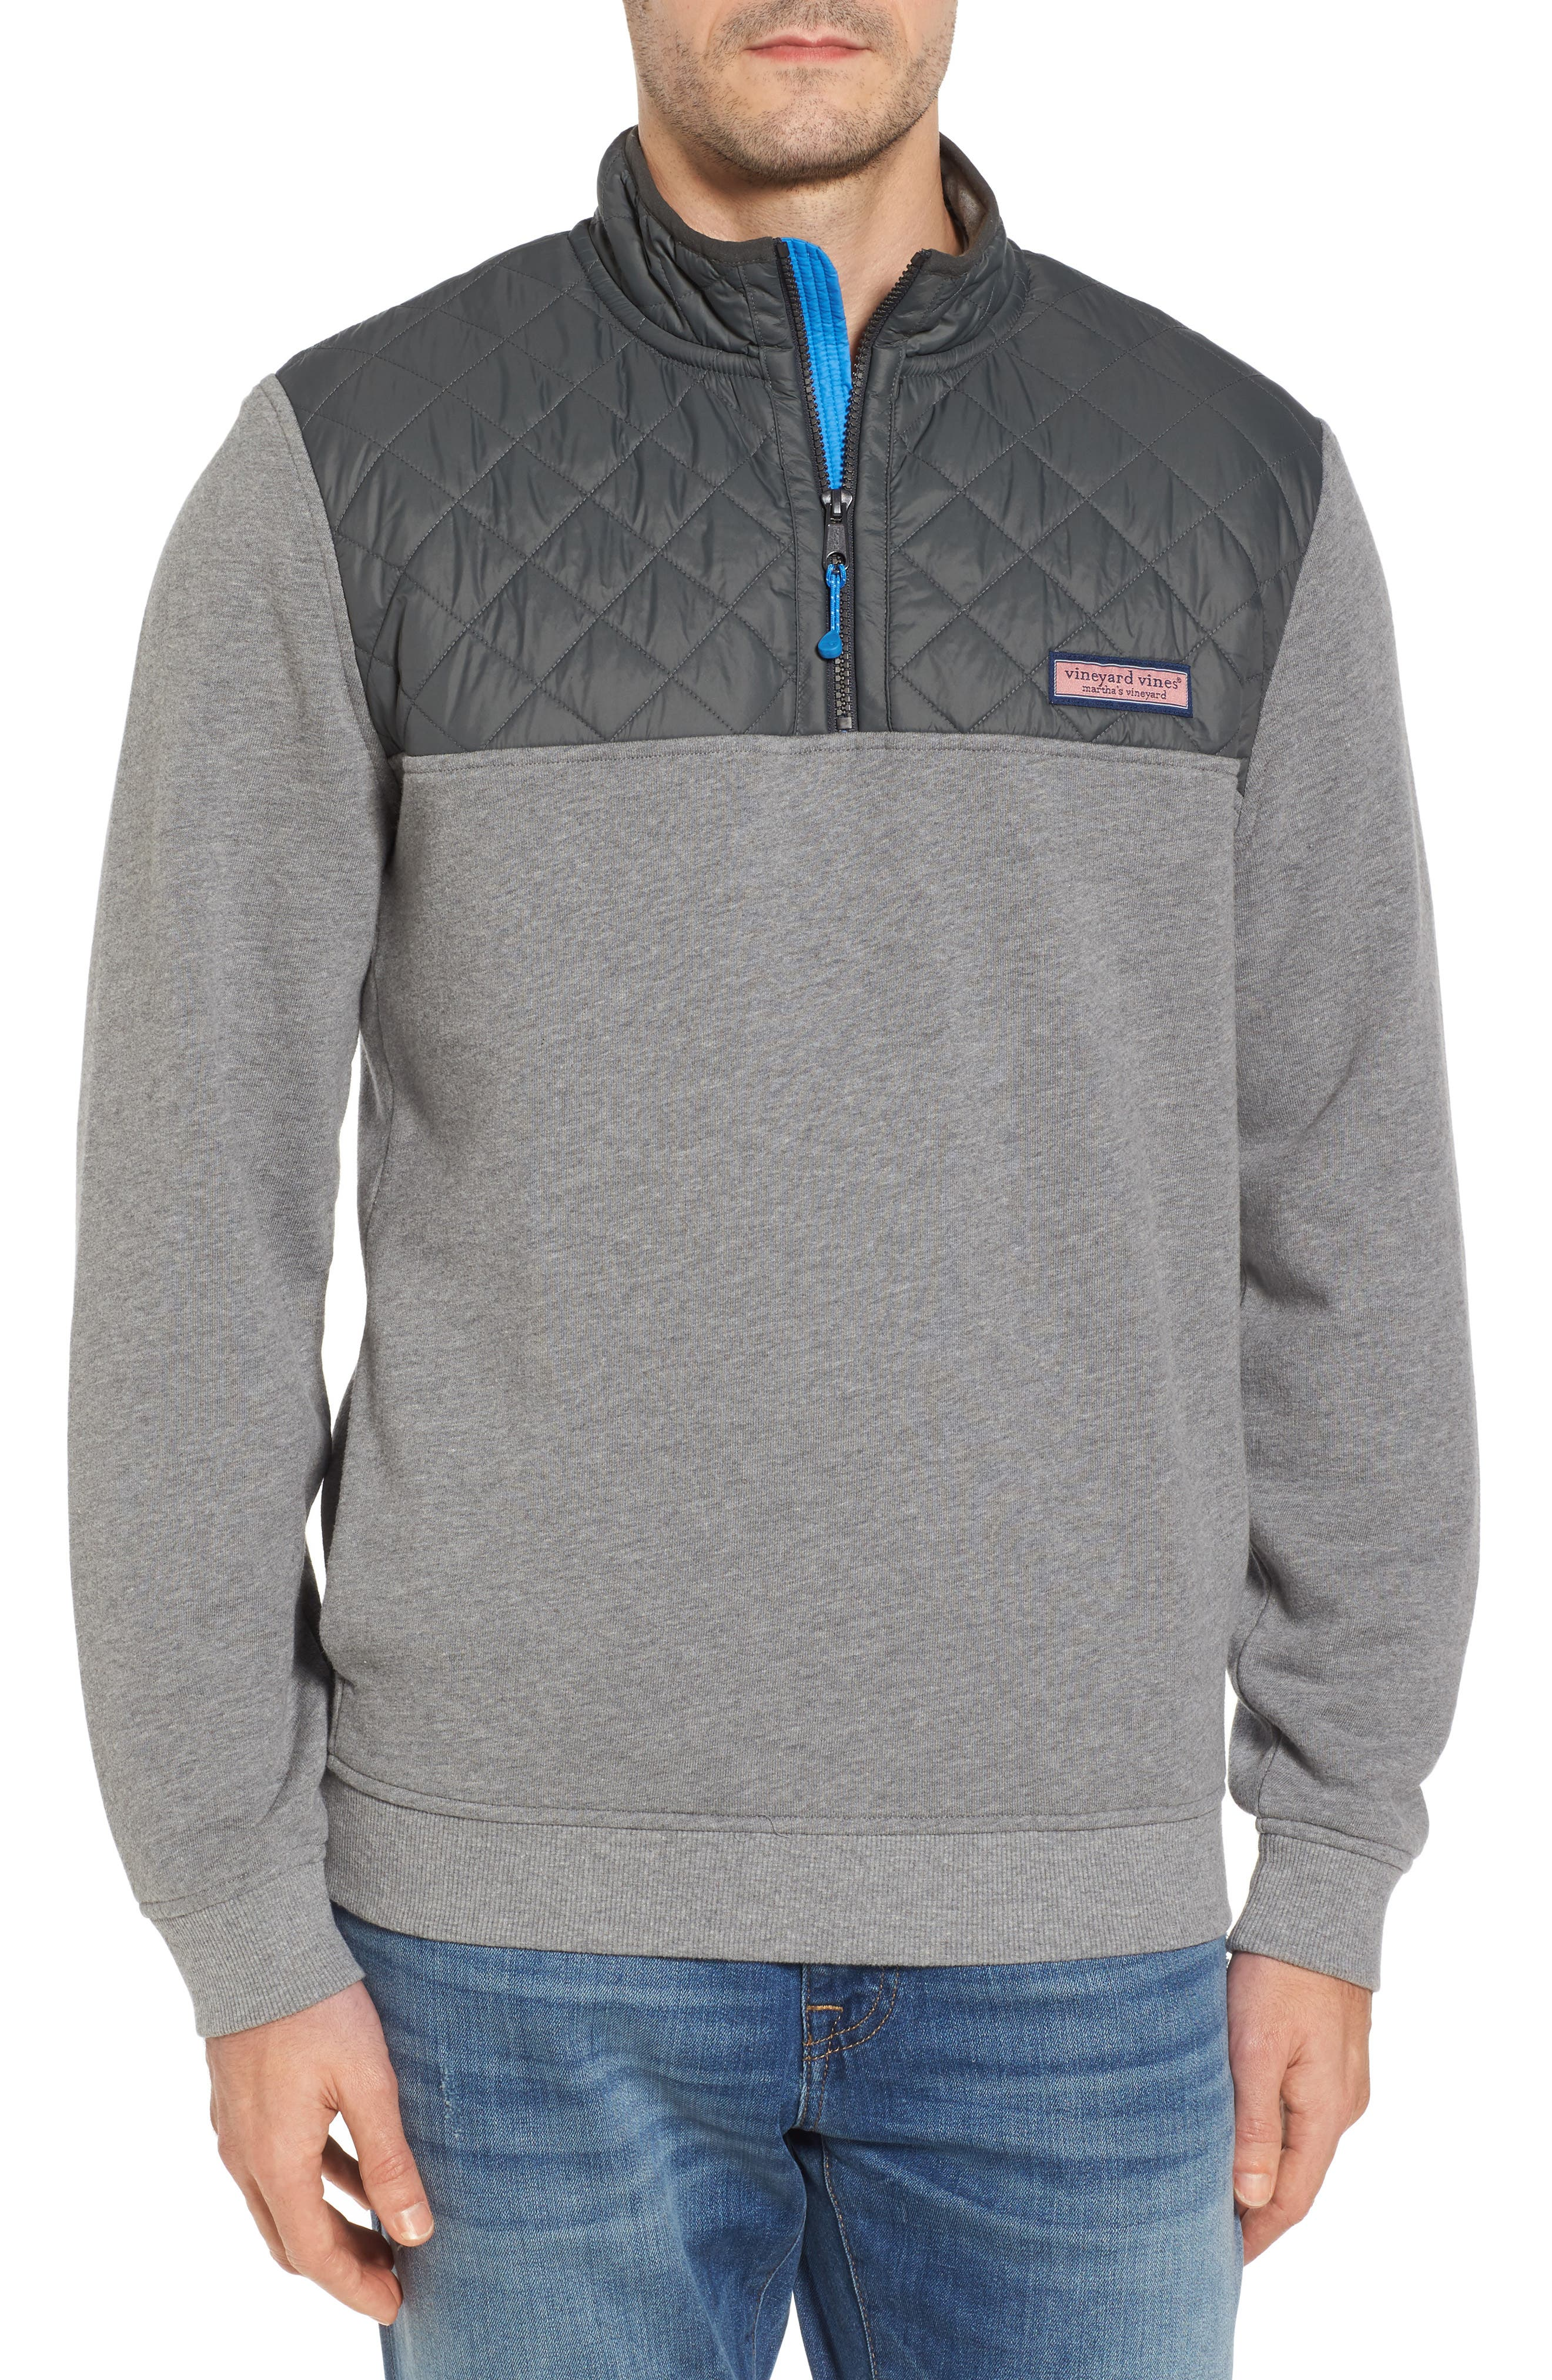 Shep Performance Quilted Yoke Quarter Zip Pullover,                         Main,                         color, 030